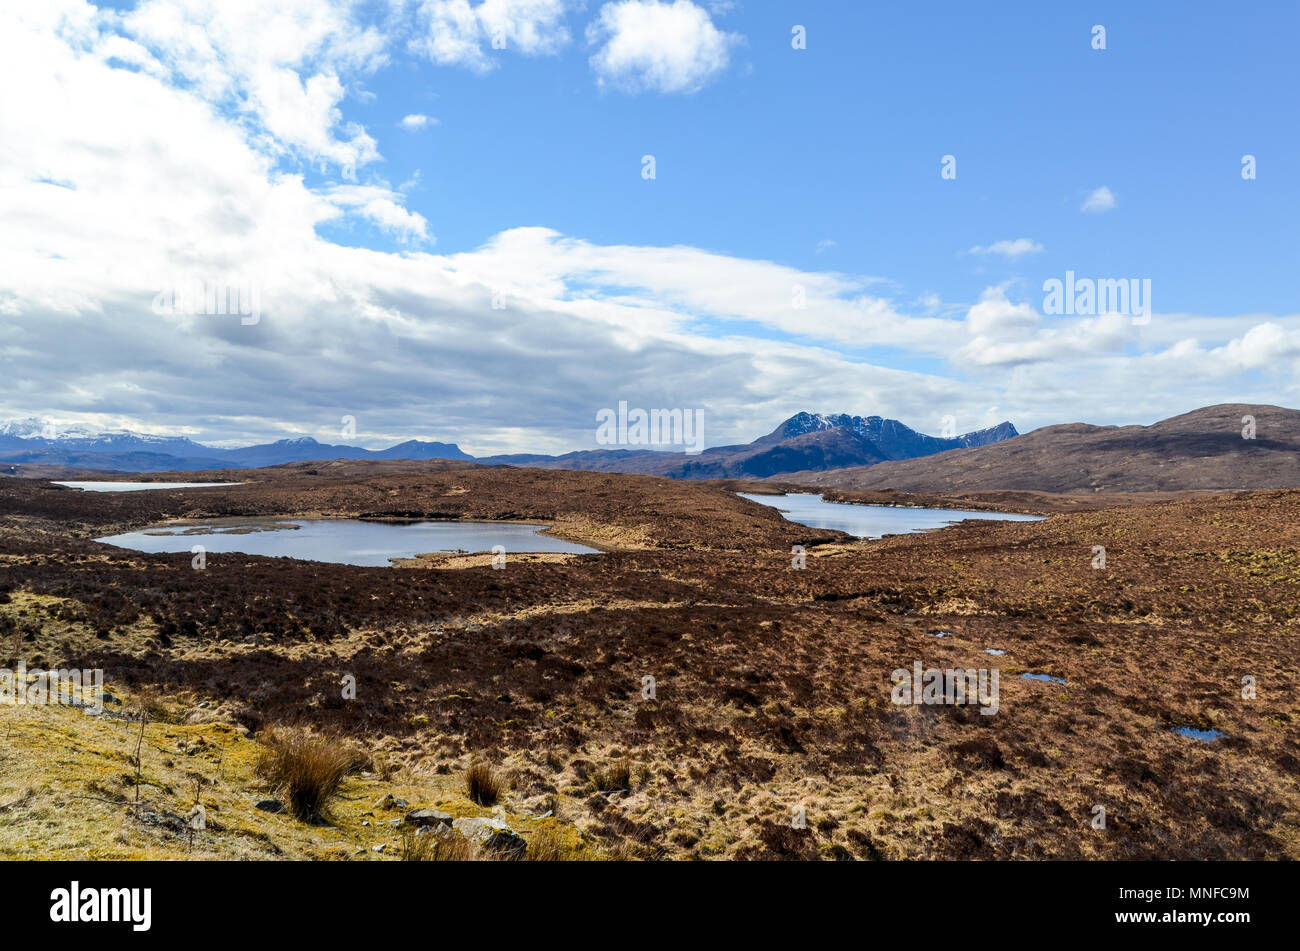 Highland landscape north of Ullapool, in western Ross-shire, Scottish Highlands - Stock Image